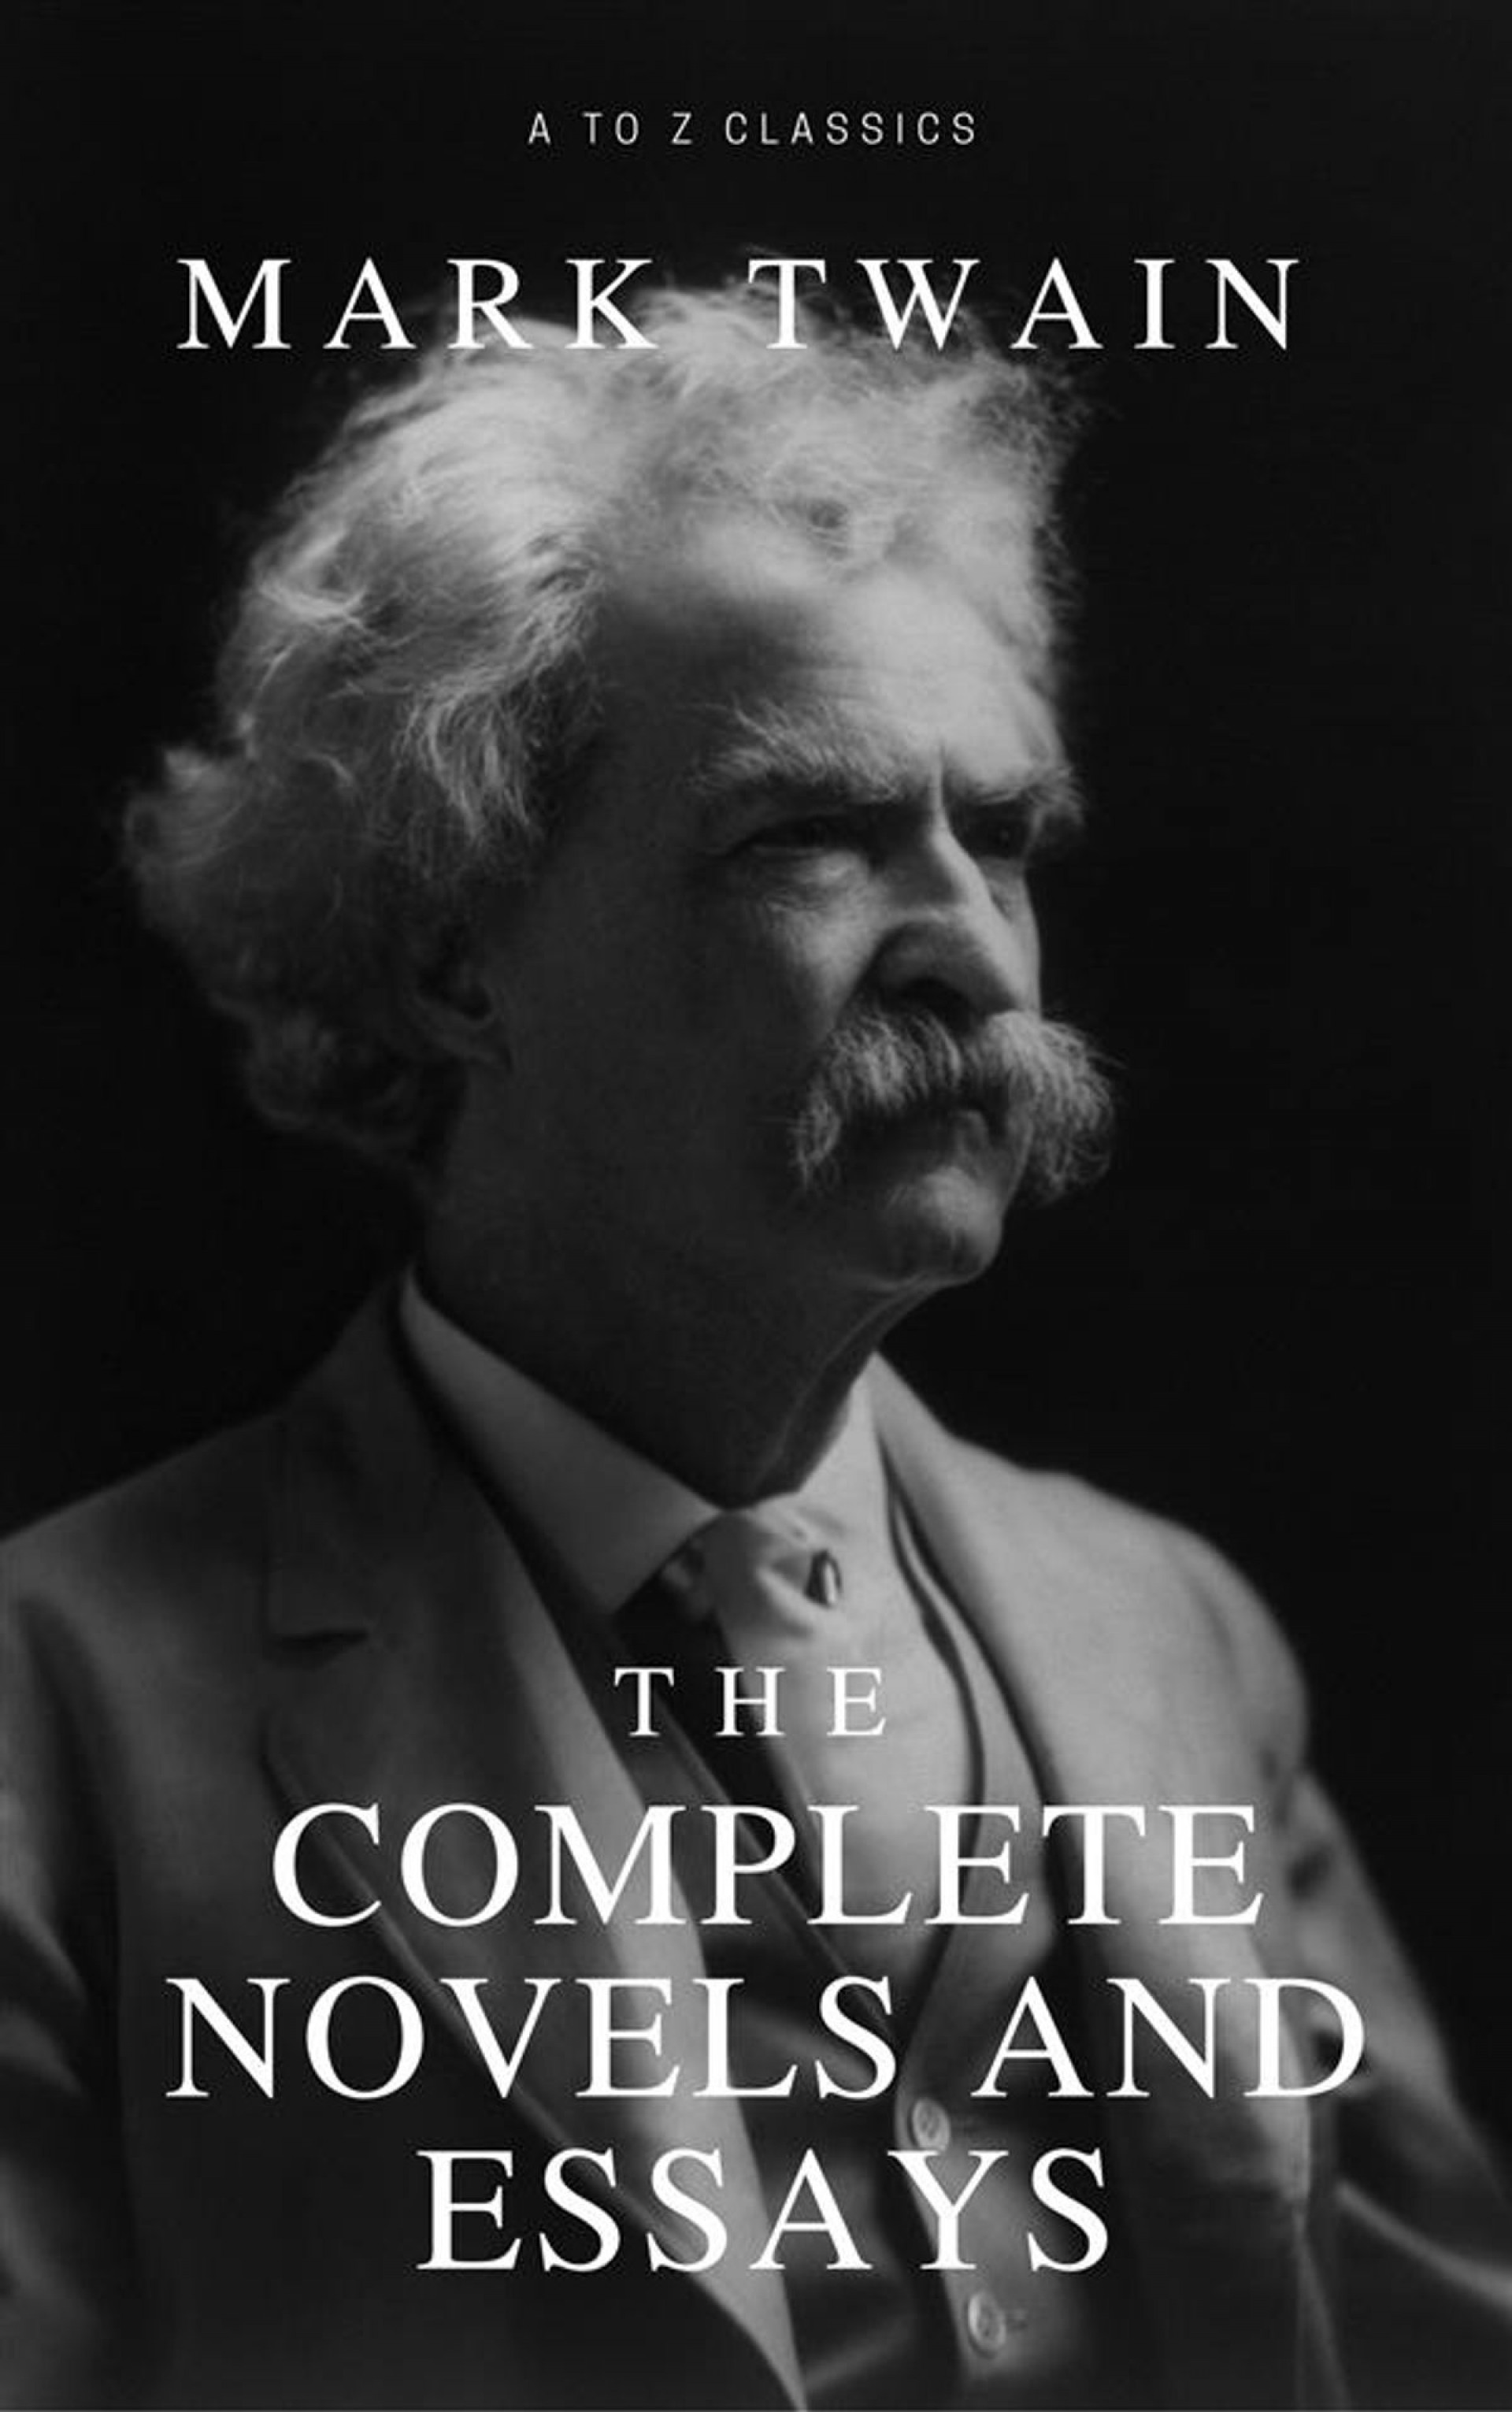 009 Essay Example Mark Twain The Complete Novels And Surprising Essays Pdf On Writing Nonfiction 1920